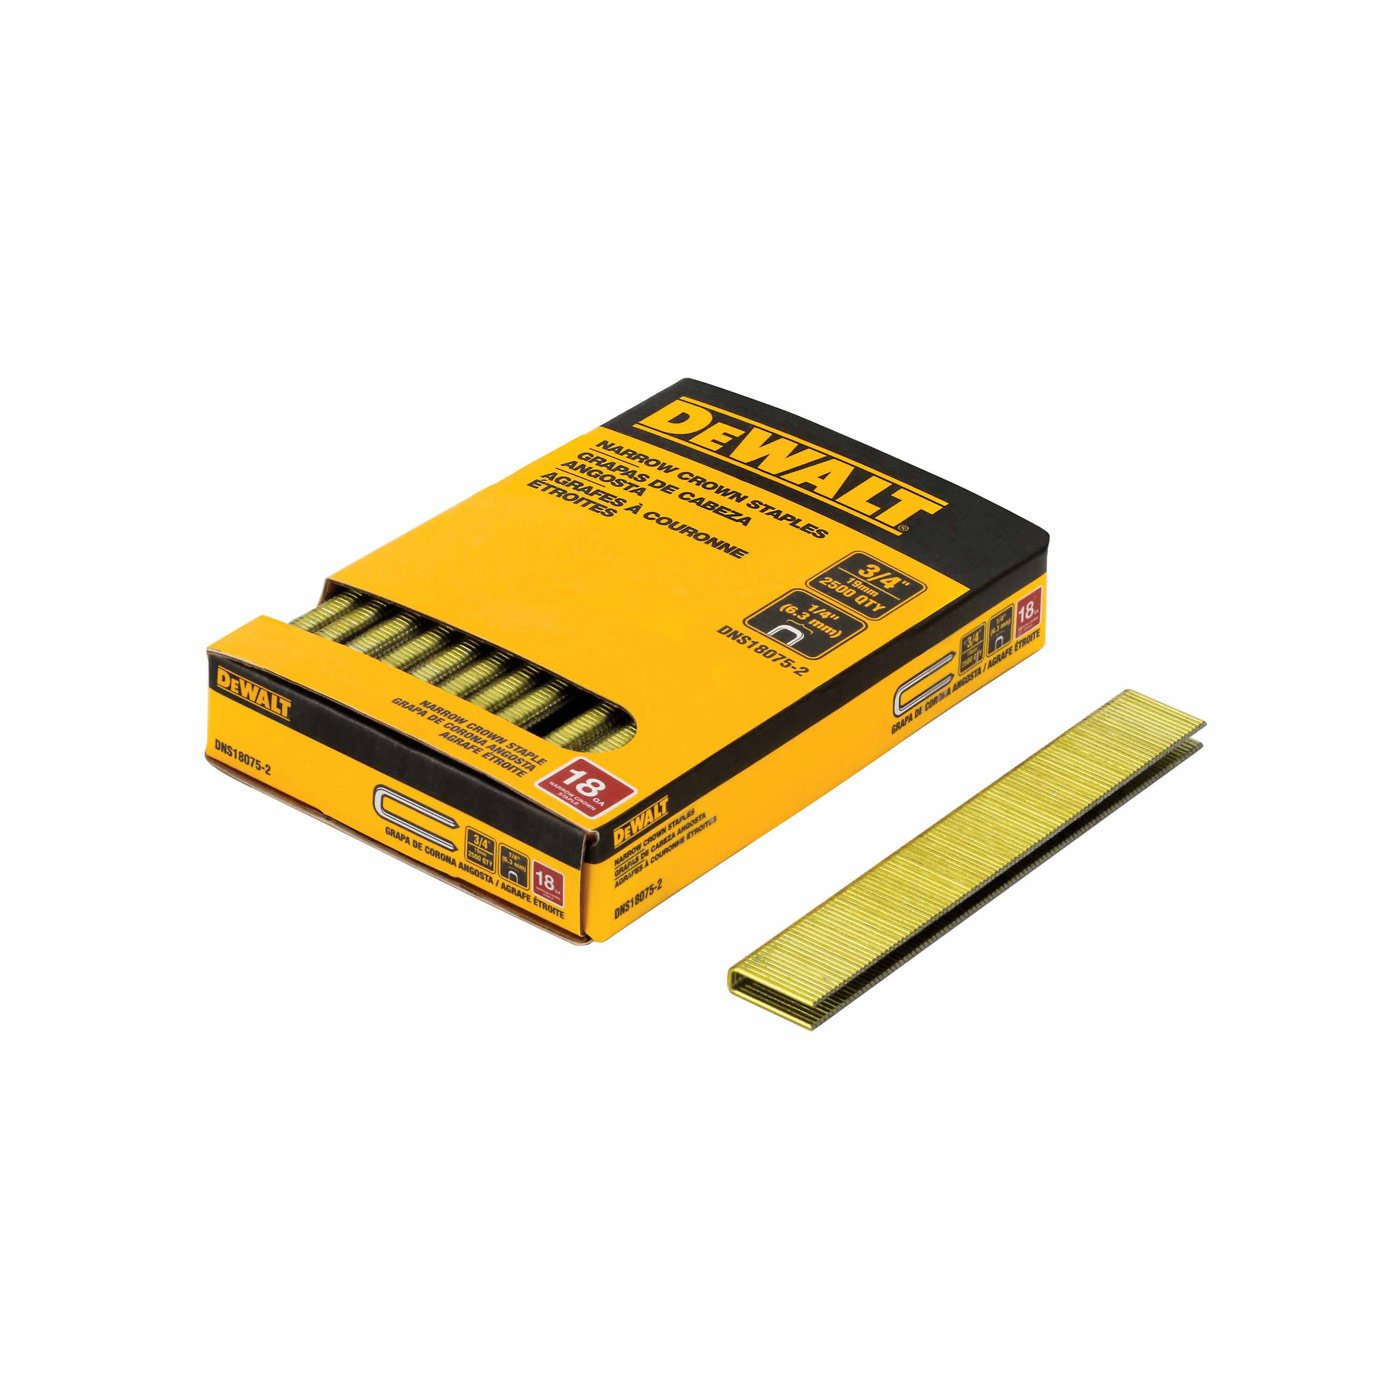 DeWalt DNS18075-2 3/4-inch 18-gauge 1/4 Crown Staple (2,500 per Box)